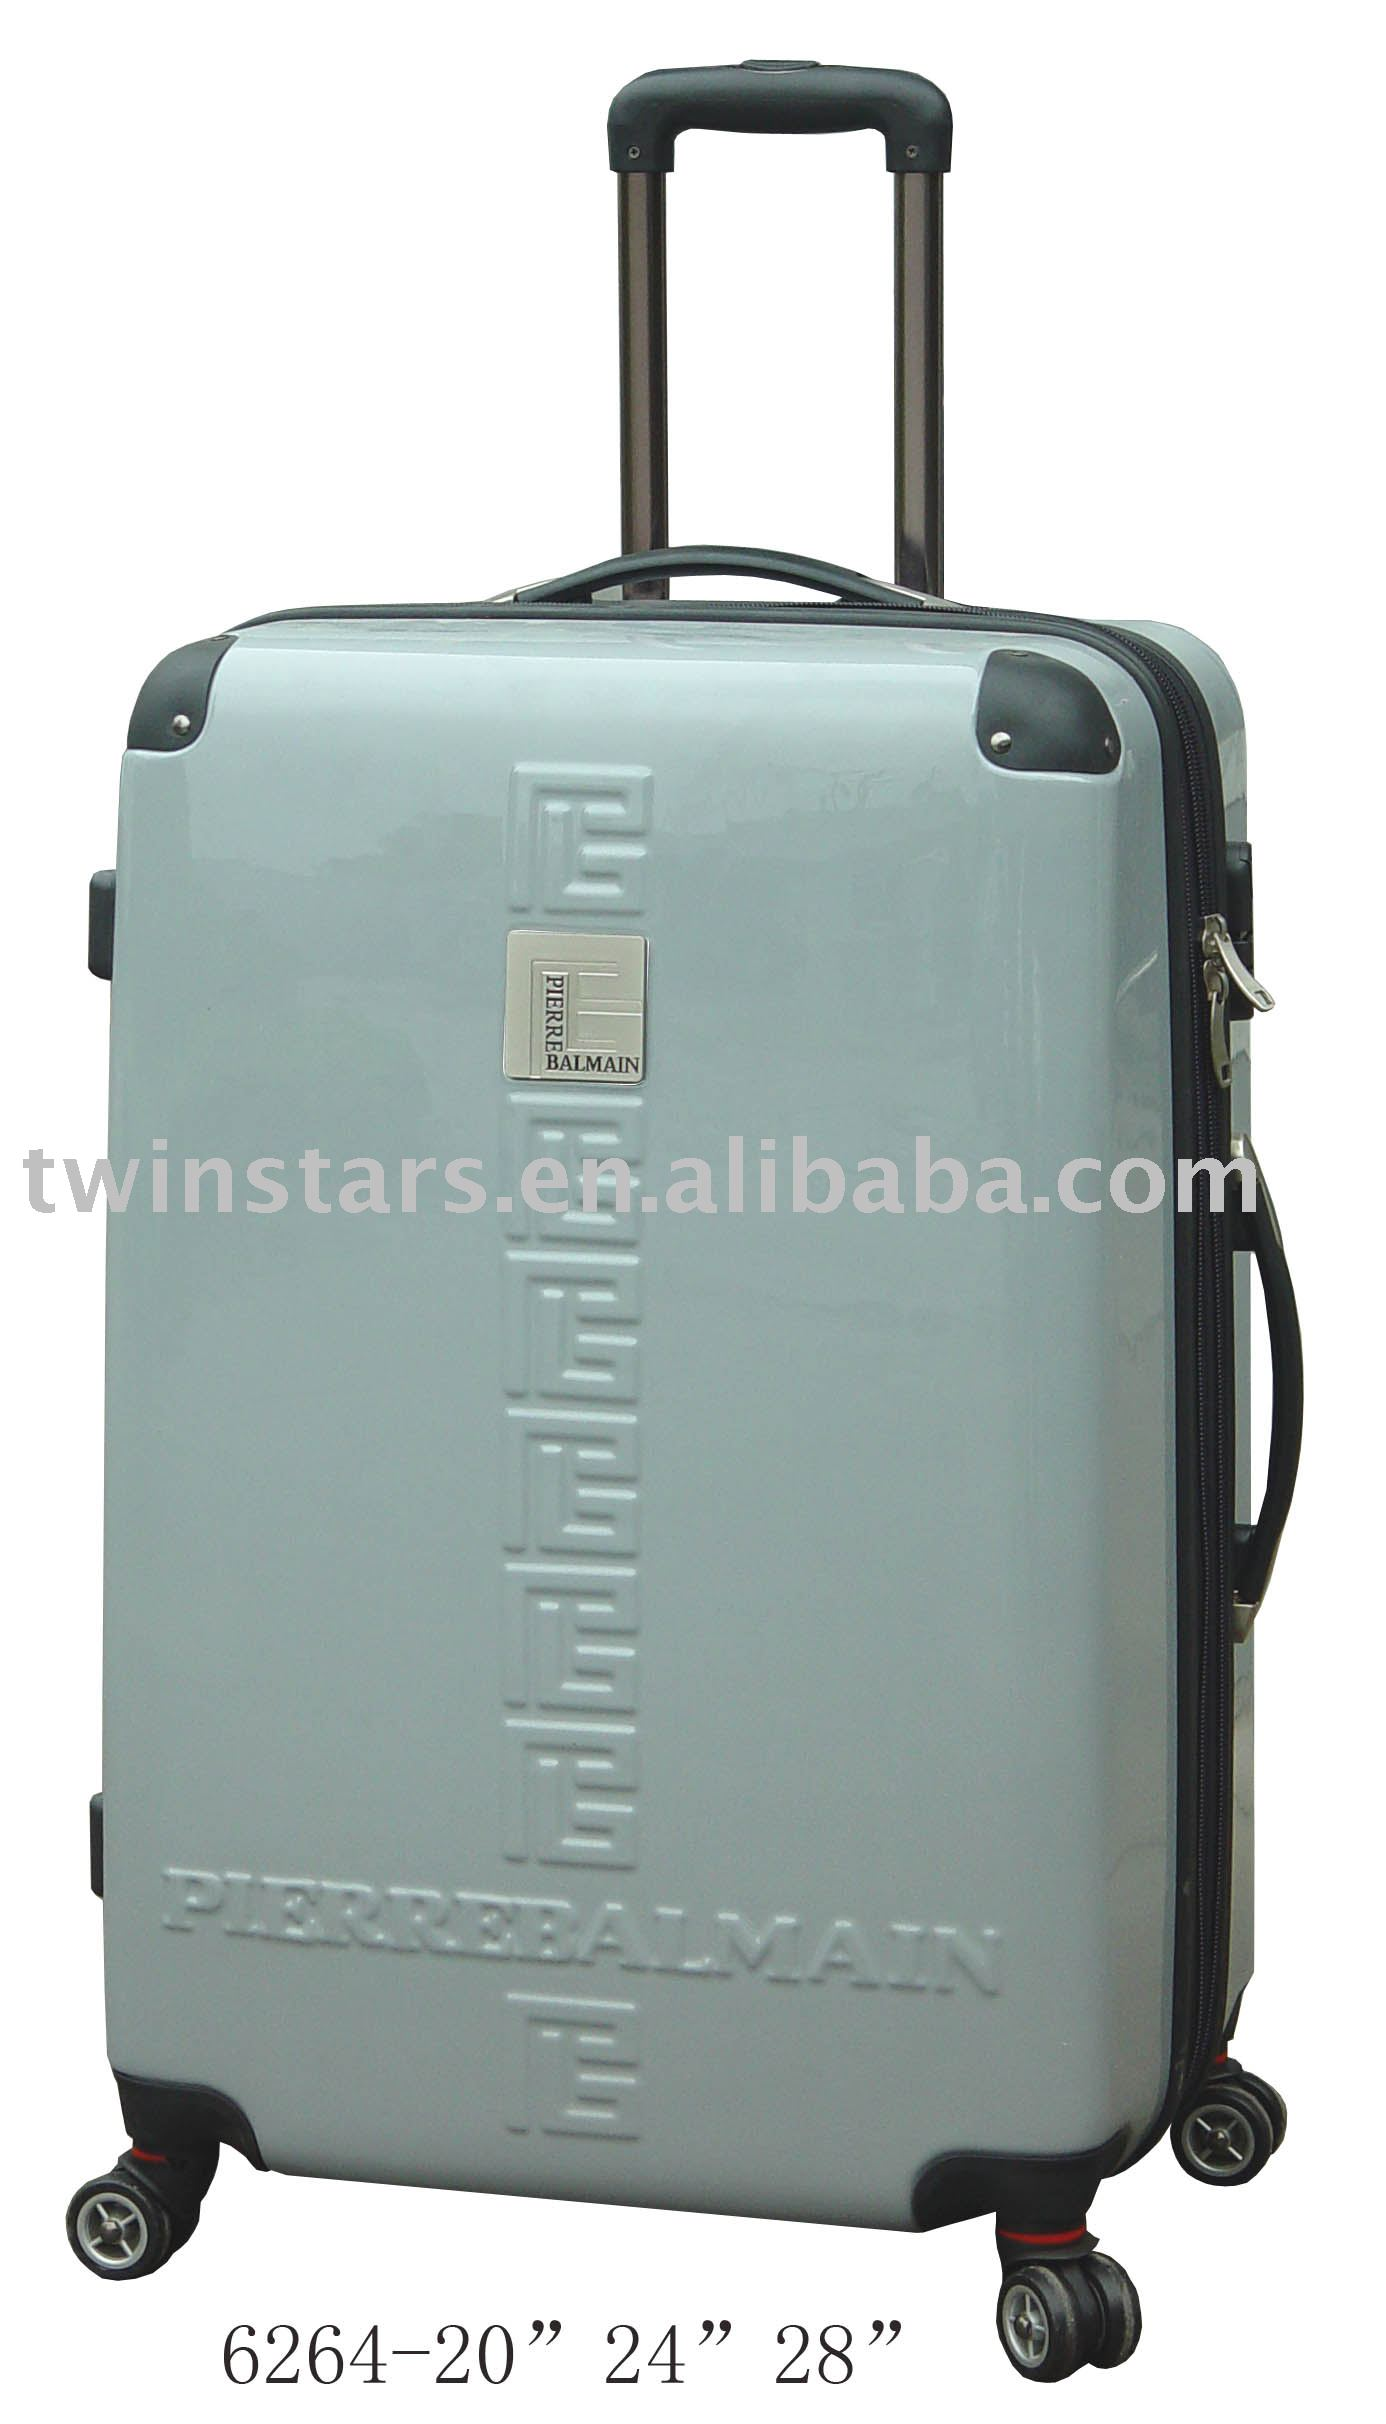 Twinstar eva luggage case